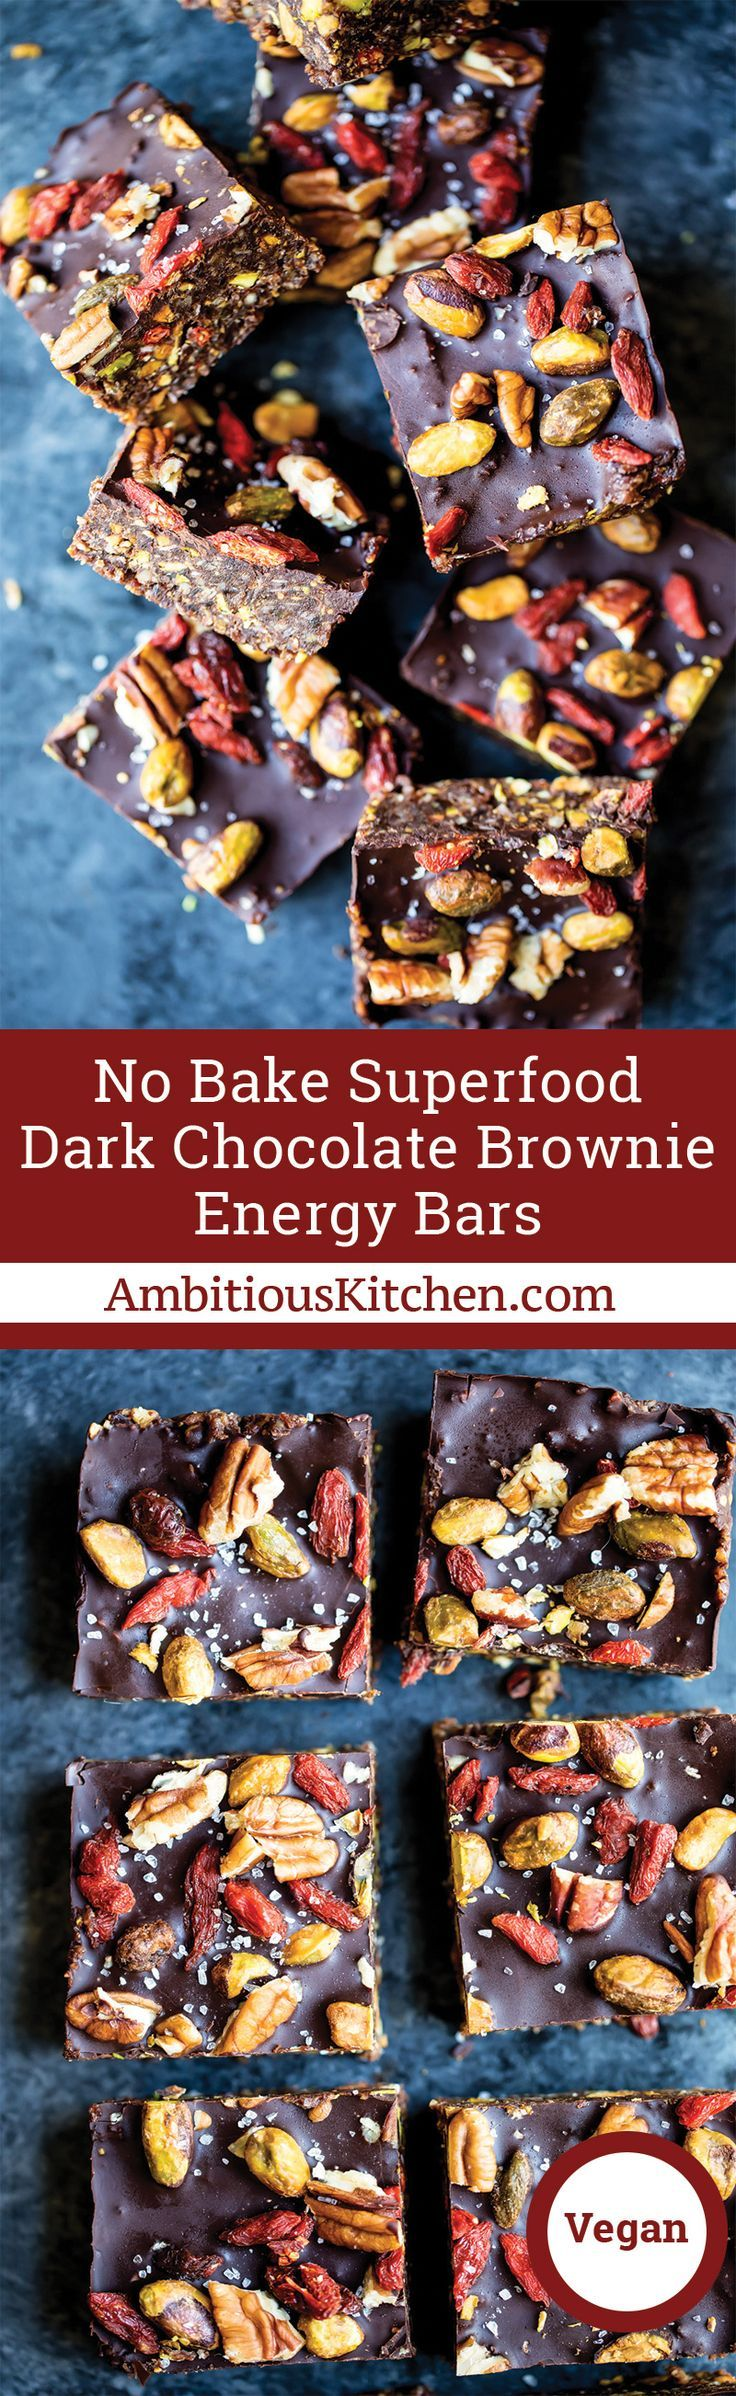 Dark Chocolate Brownie Energy Bars | Posted By: DebbieNet.com